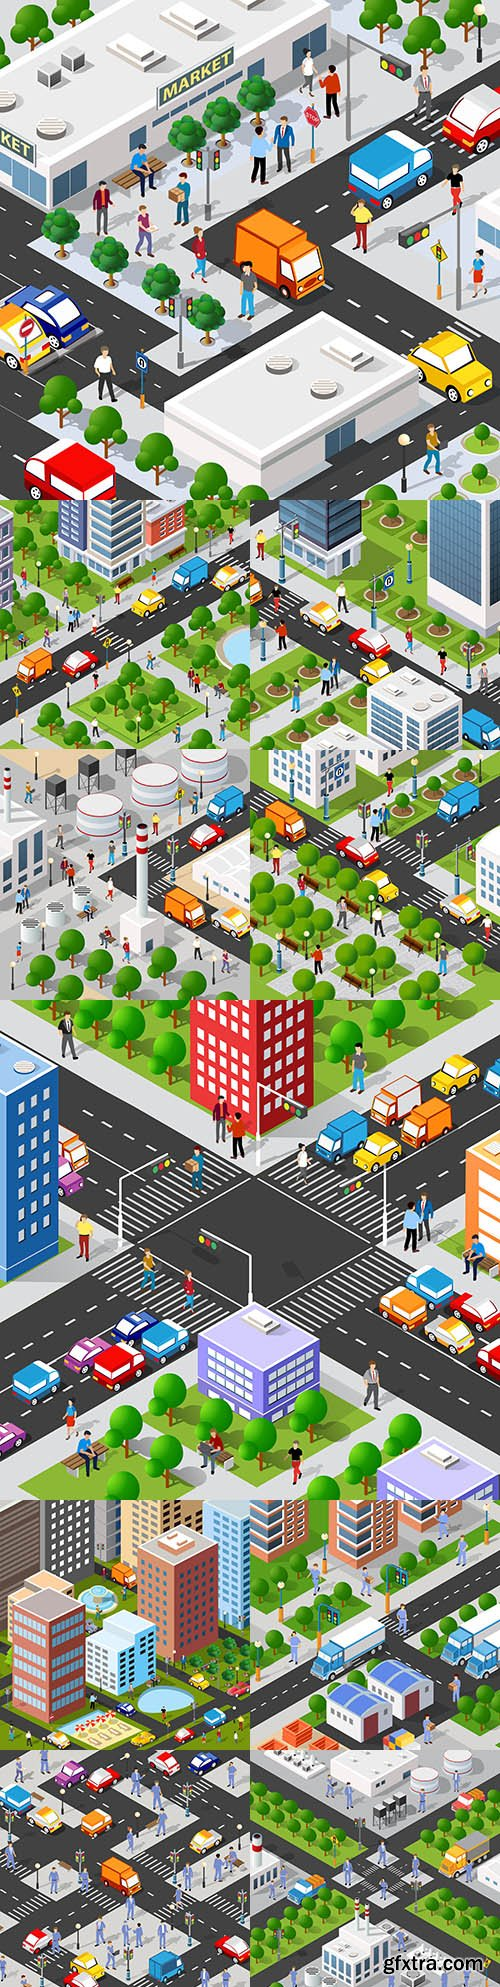 Isometric 3d illustration of the city block with houses and streets